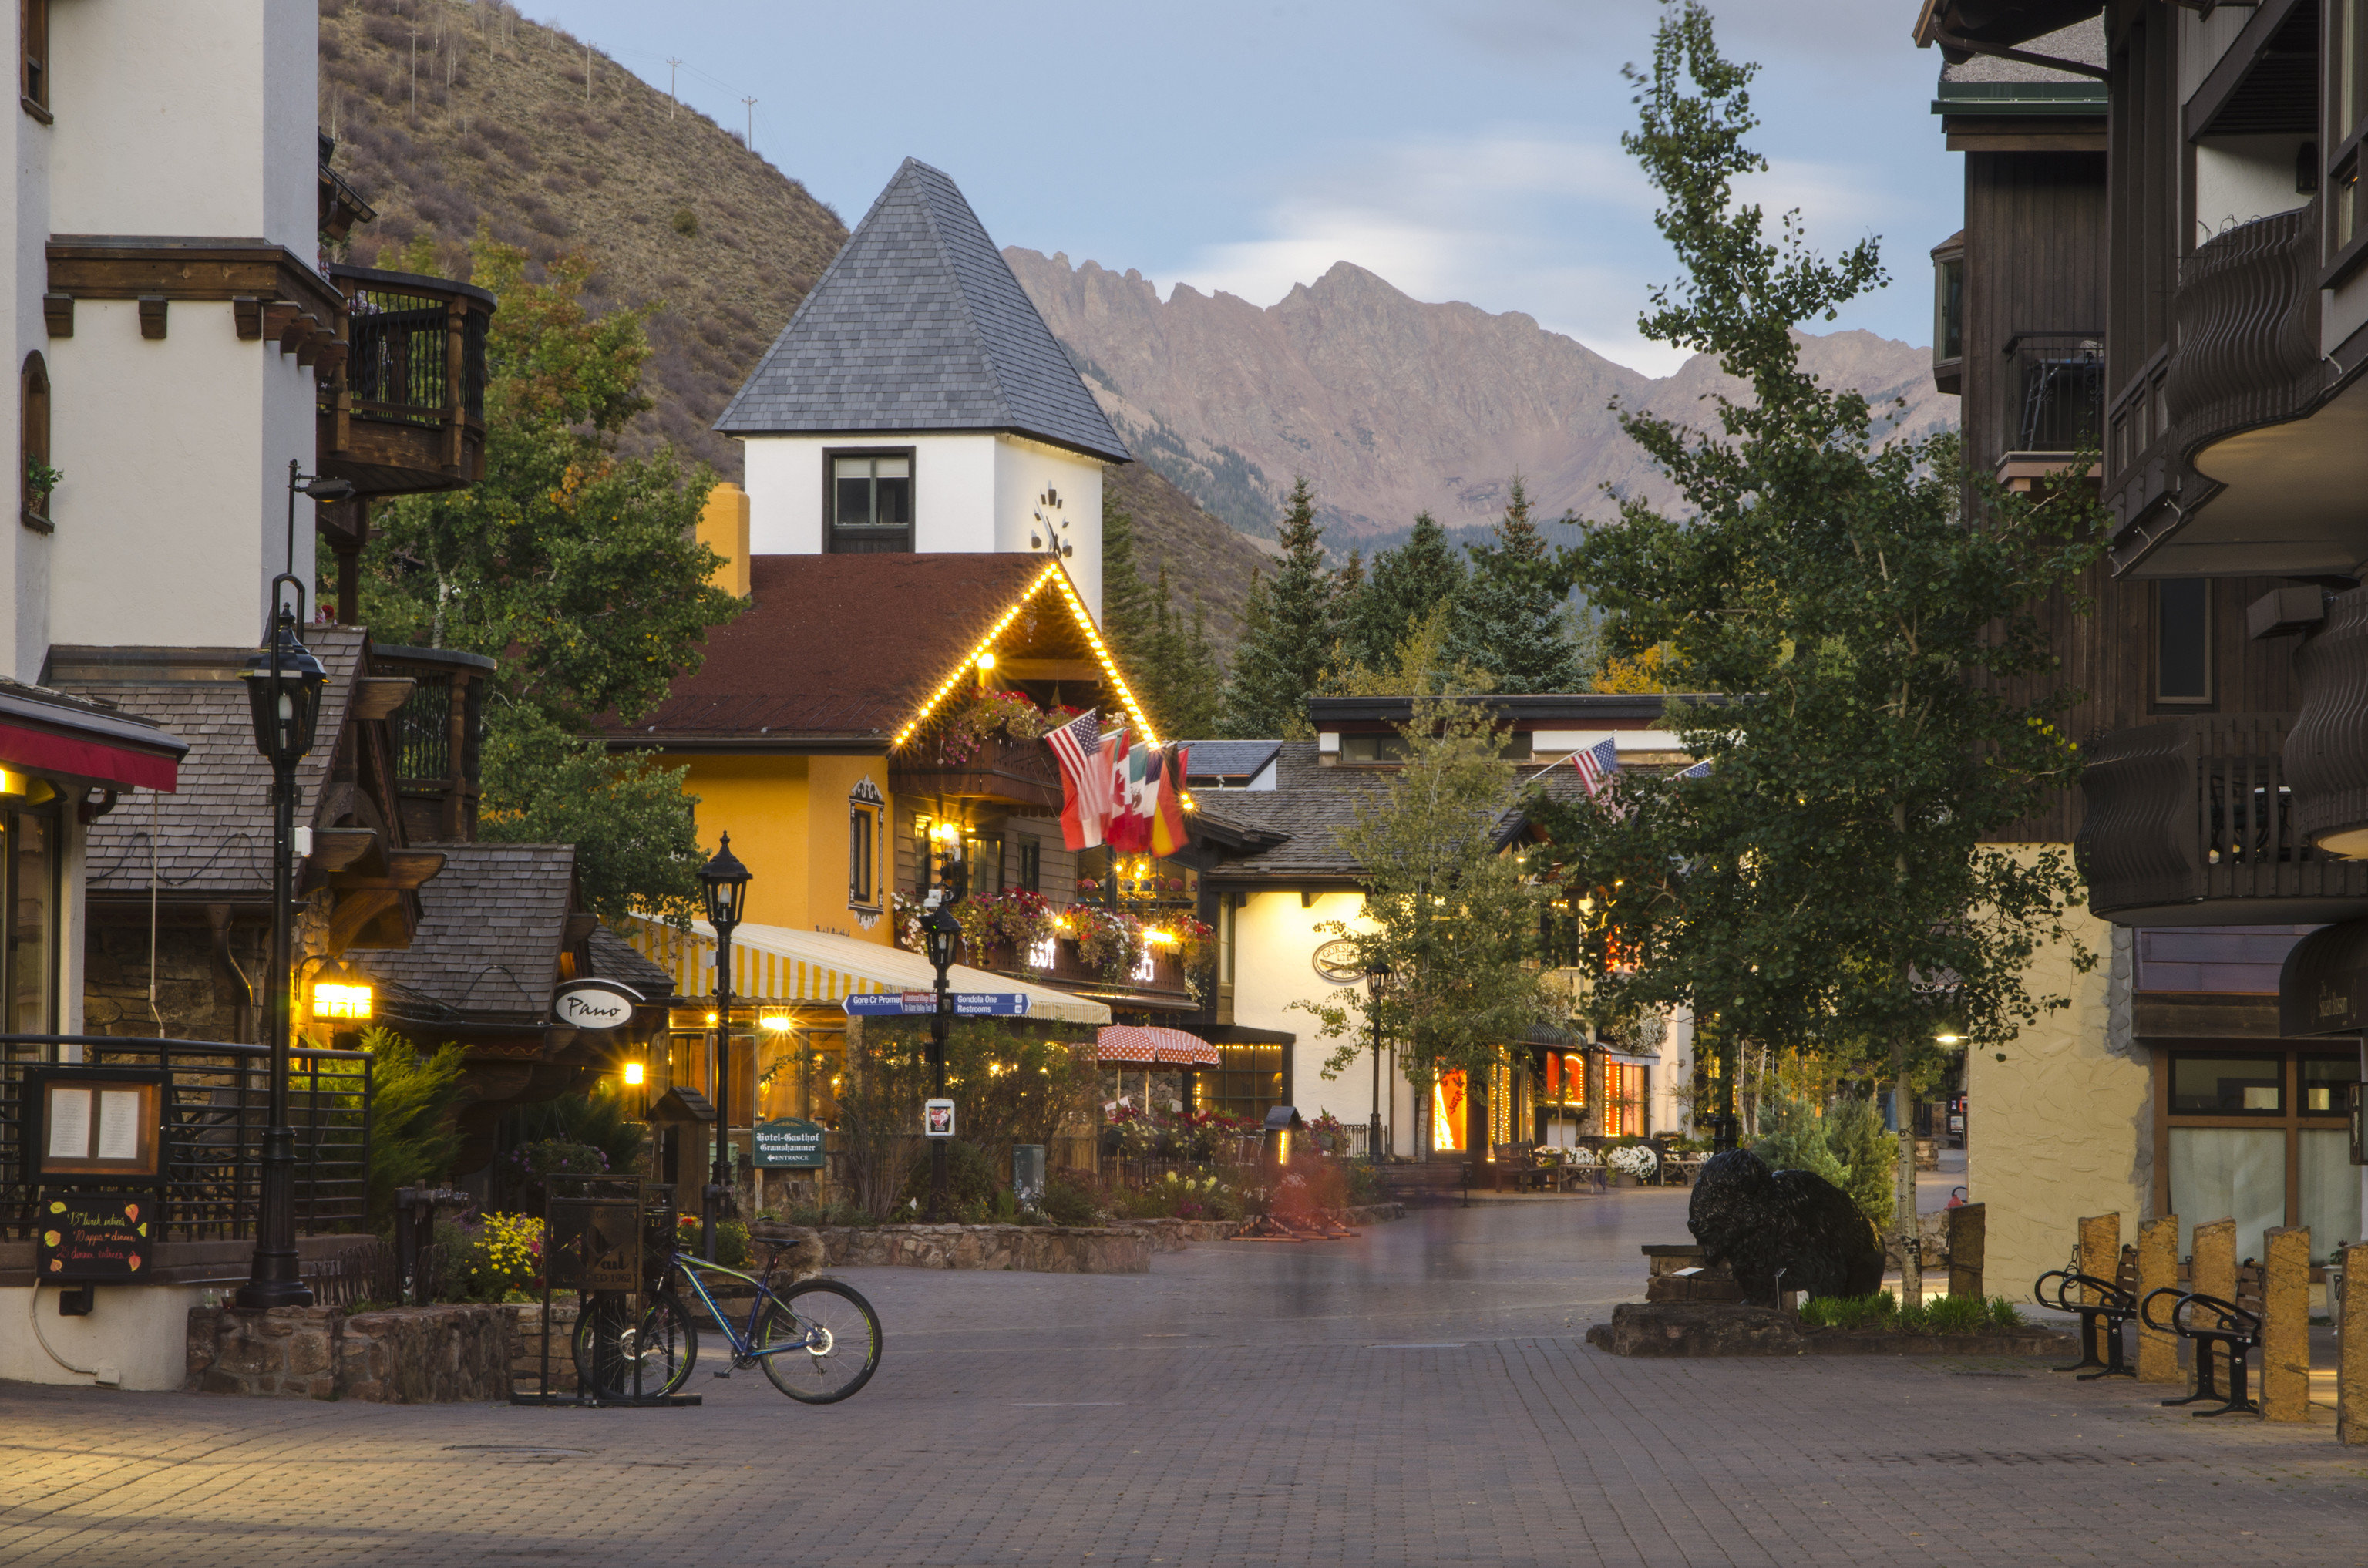 Mountains + Skiing Outdoors + Adventure building outdoor road Town house neighbourhood City way human settlement street vacation residential area Village tourism Downtown sidewalk travel restaurant